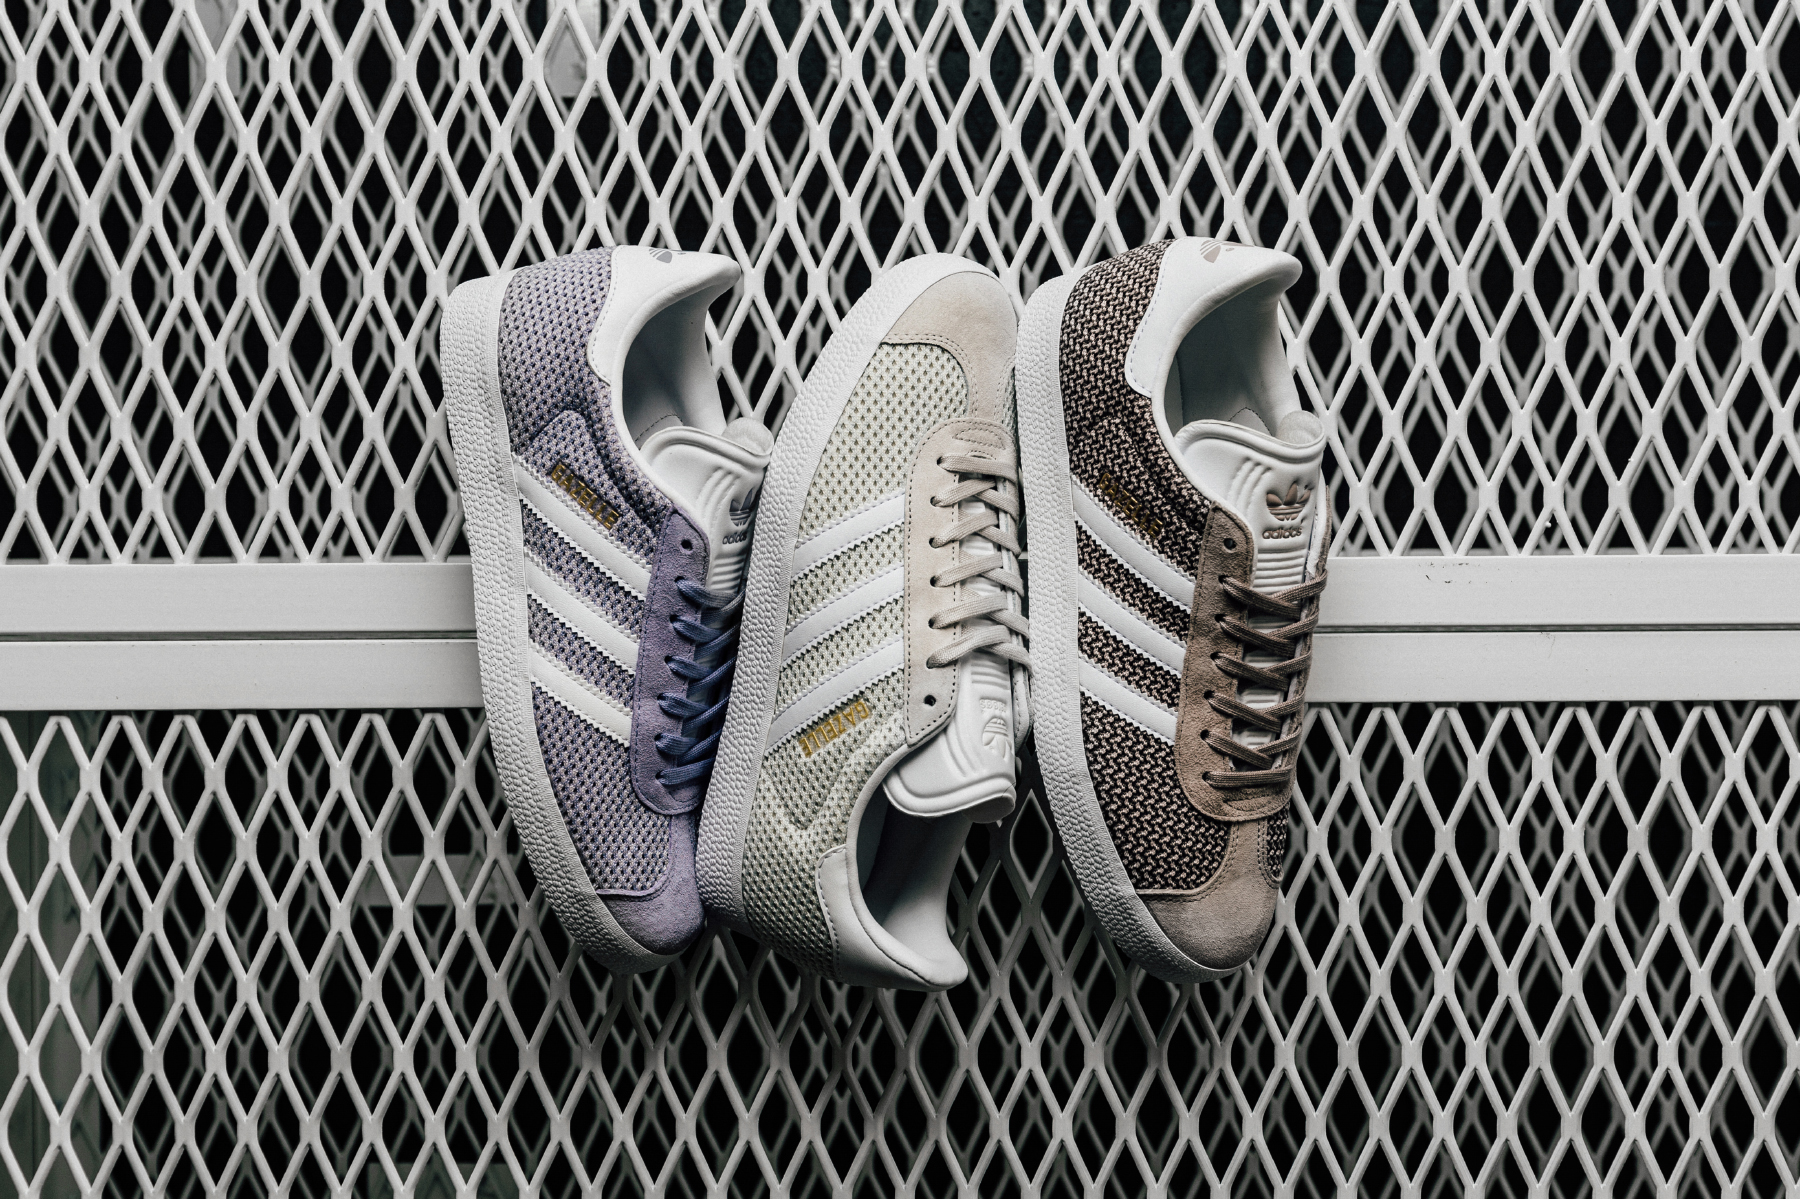 Adidas Womens Gazelle April 17 2017-1.jpg